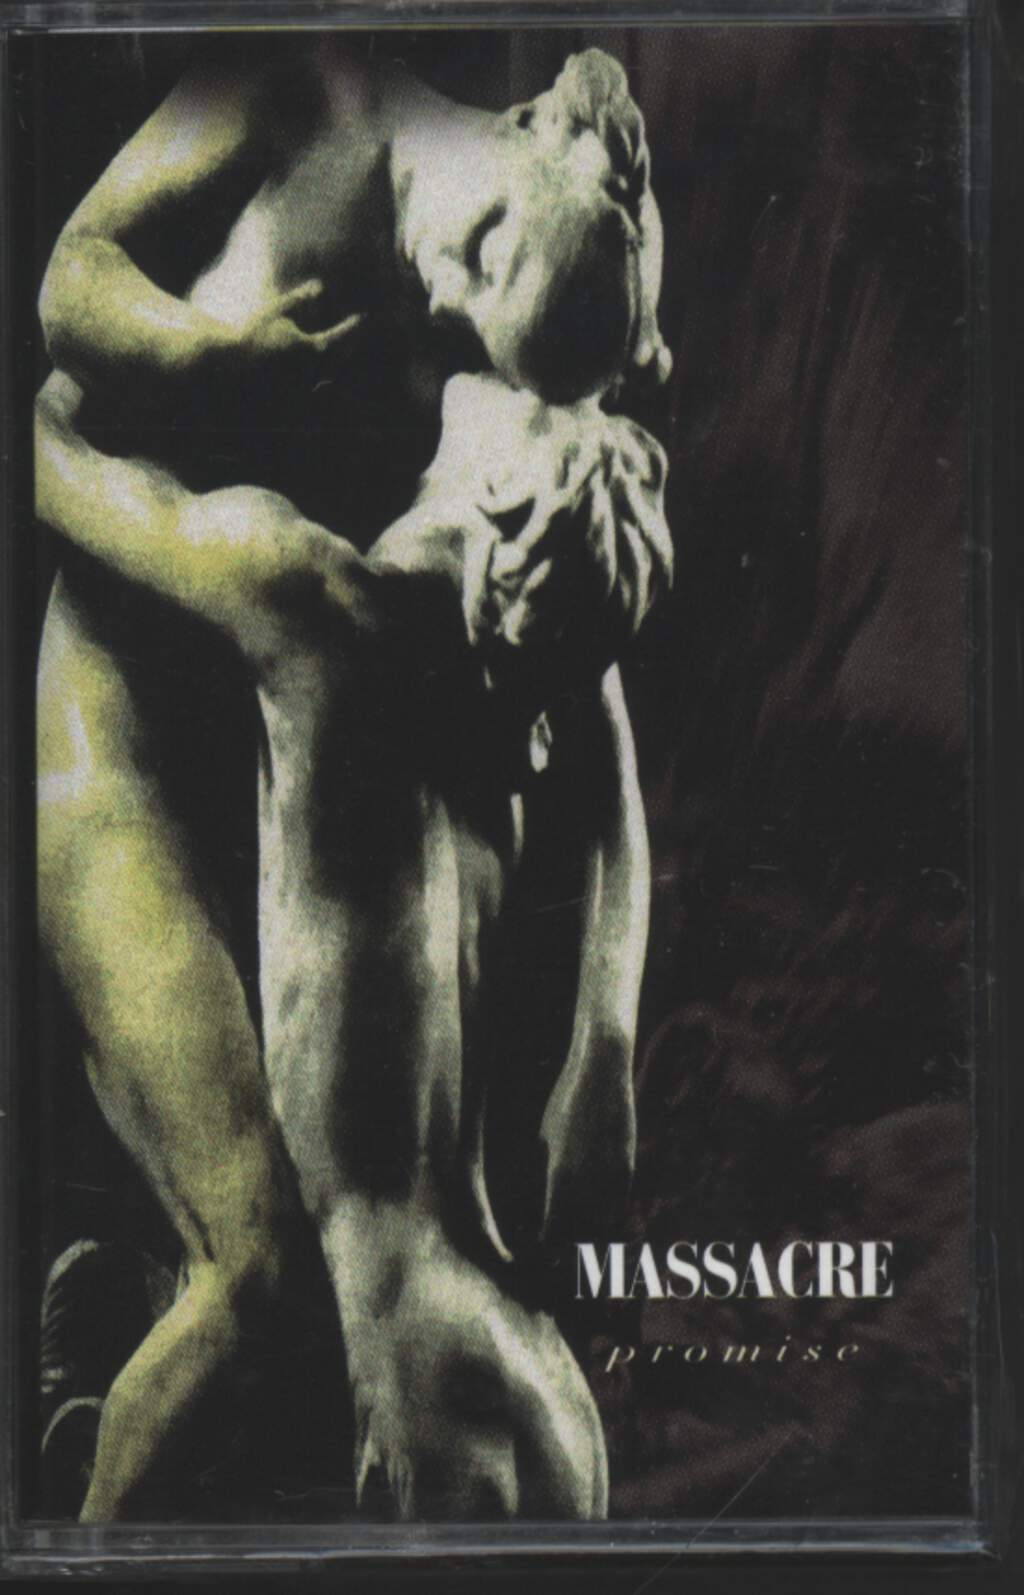 Massacre: Promise, Tape